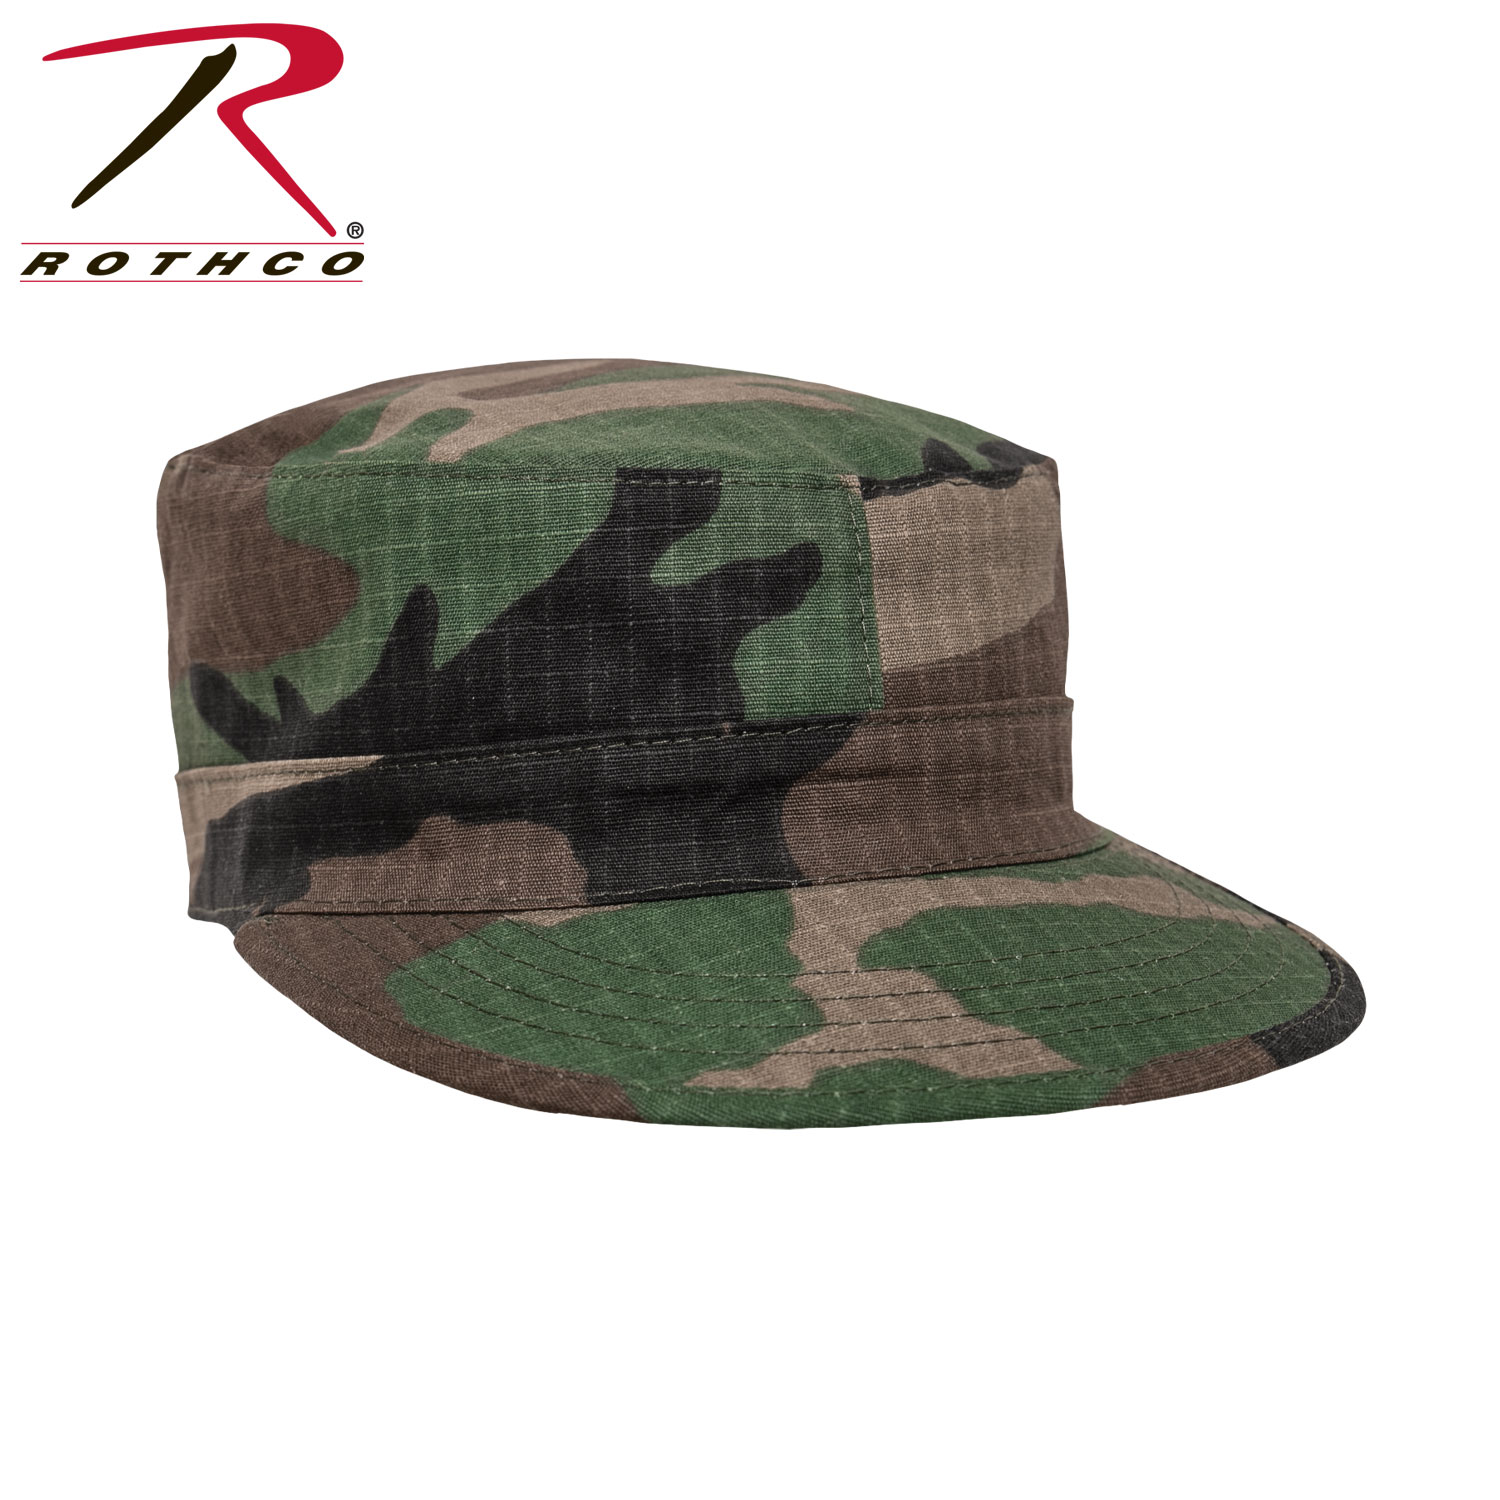 4cded12b548 Rothco Camo Fatigue Caps